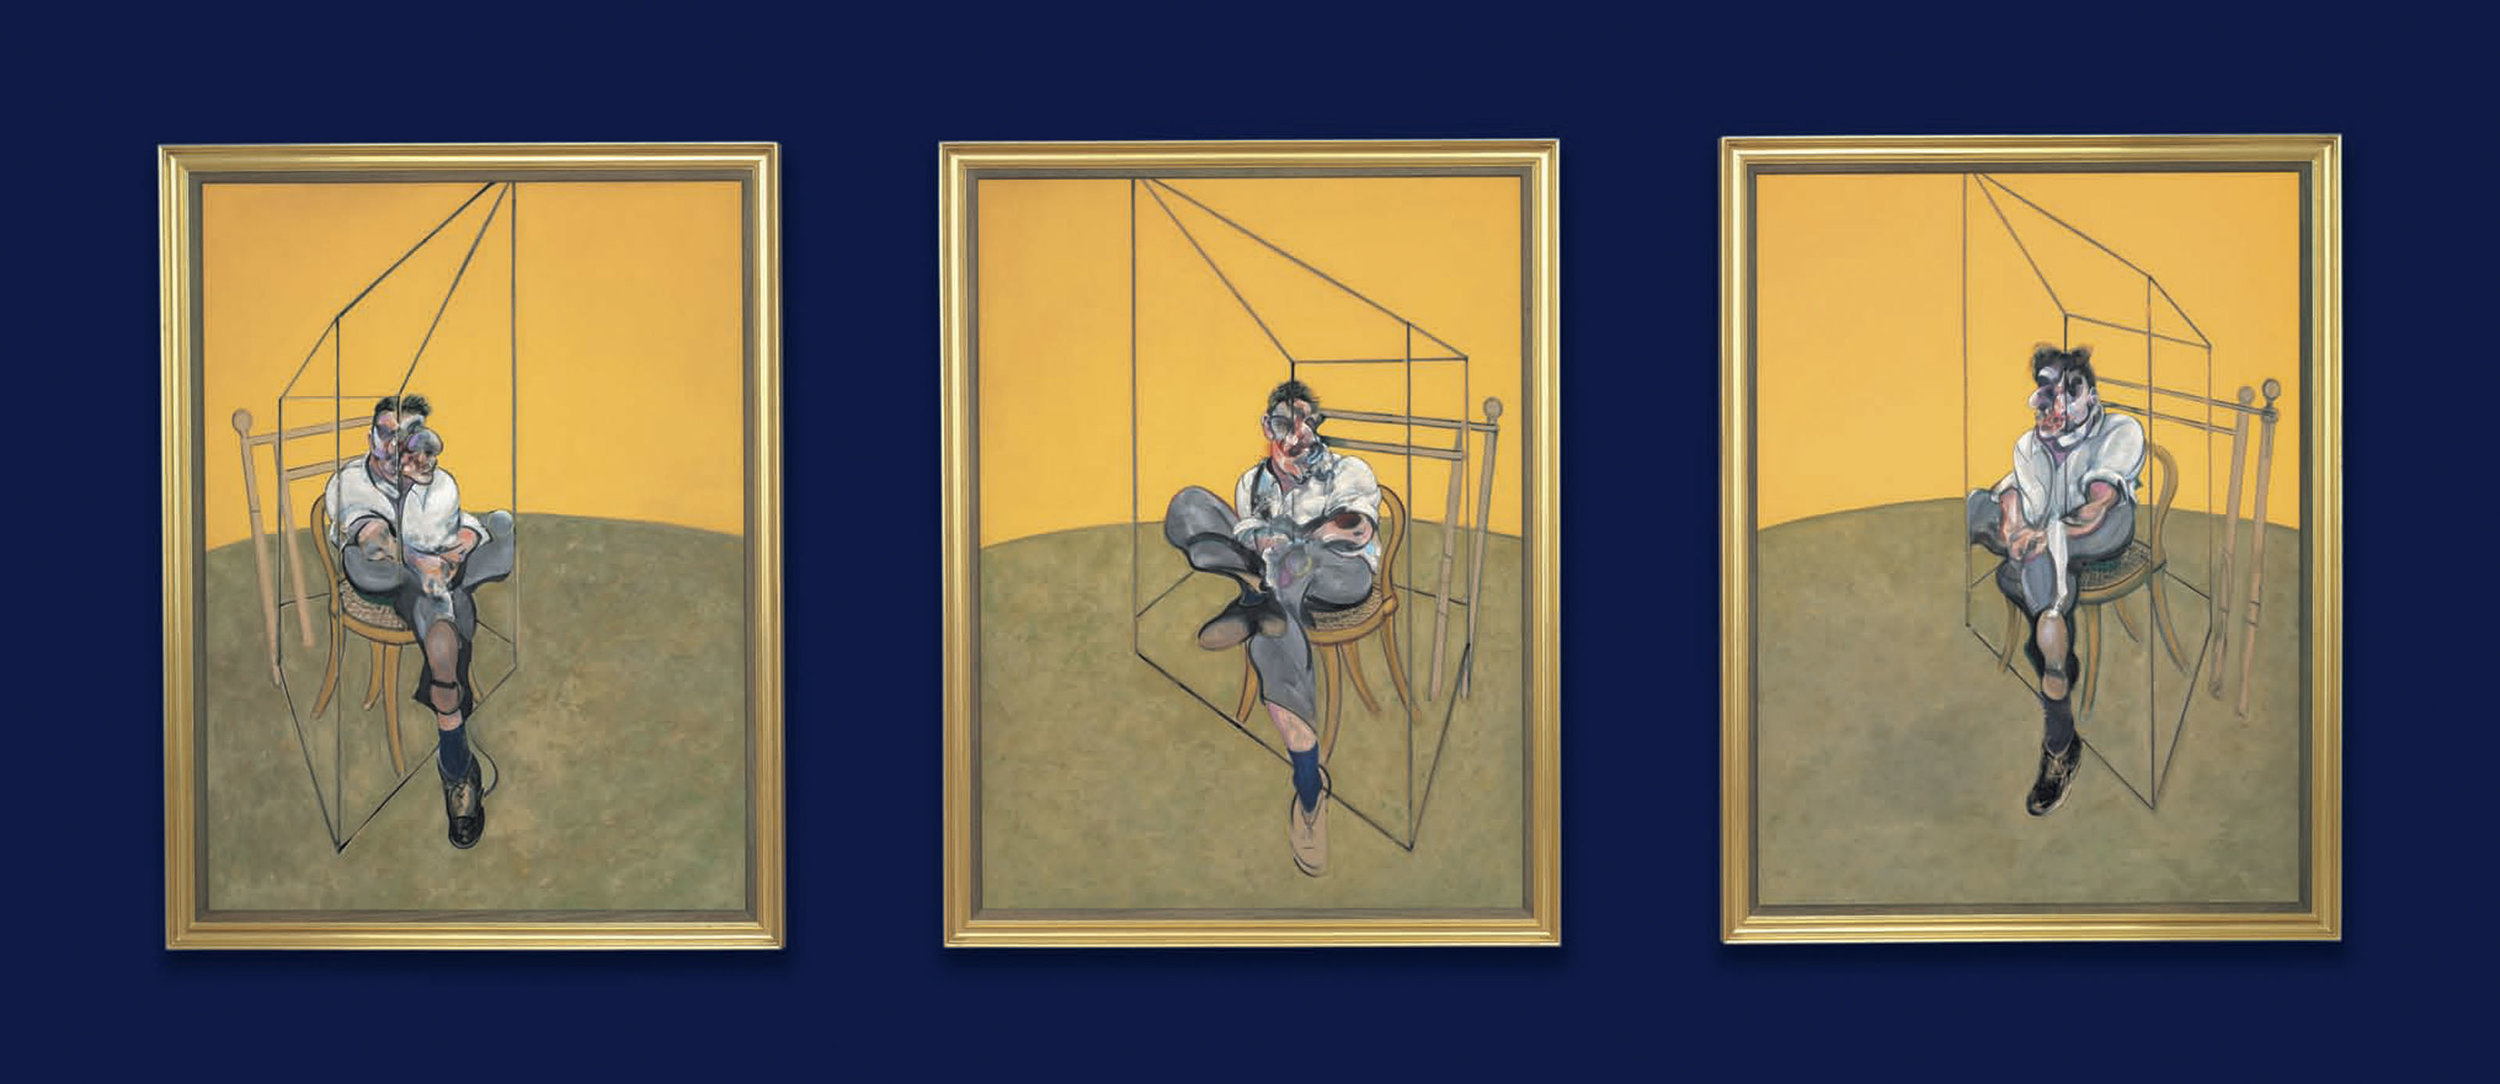 Francis Bacon,  Three Studies of Lucian Freud,  1969, Oil on Canvas in 3 Parts, Courtesy of  www.christies.com